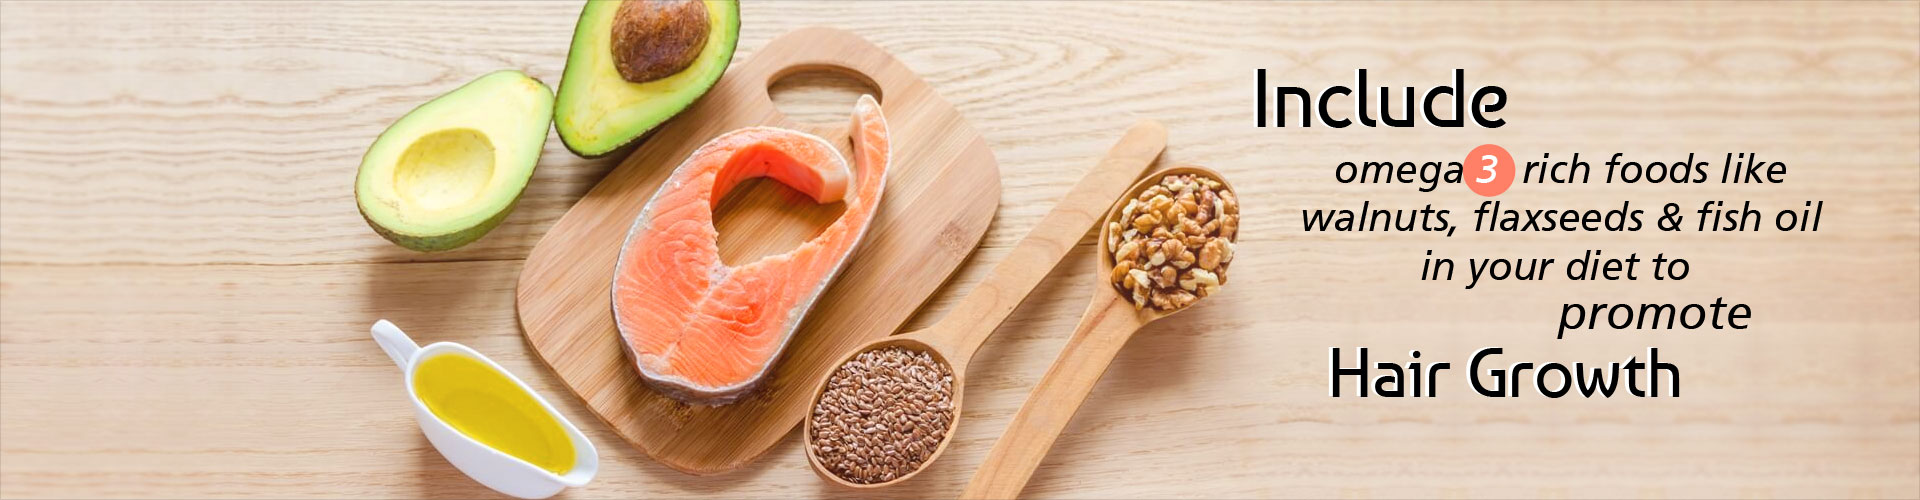 Include omega 3 rich foods like walnuts, flaxseeds and fish oil in your diet to promote hair growth.